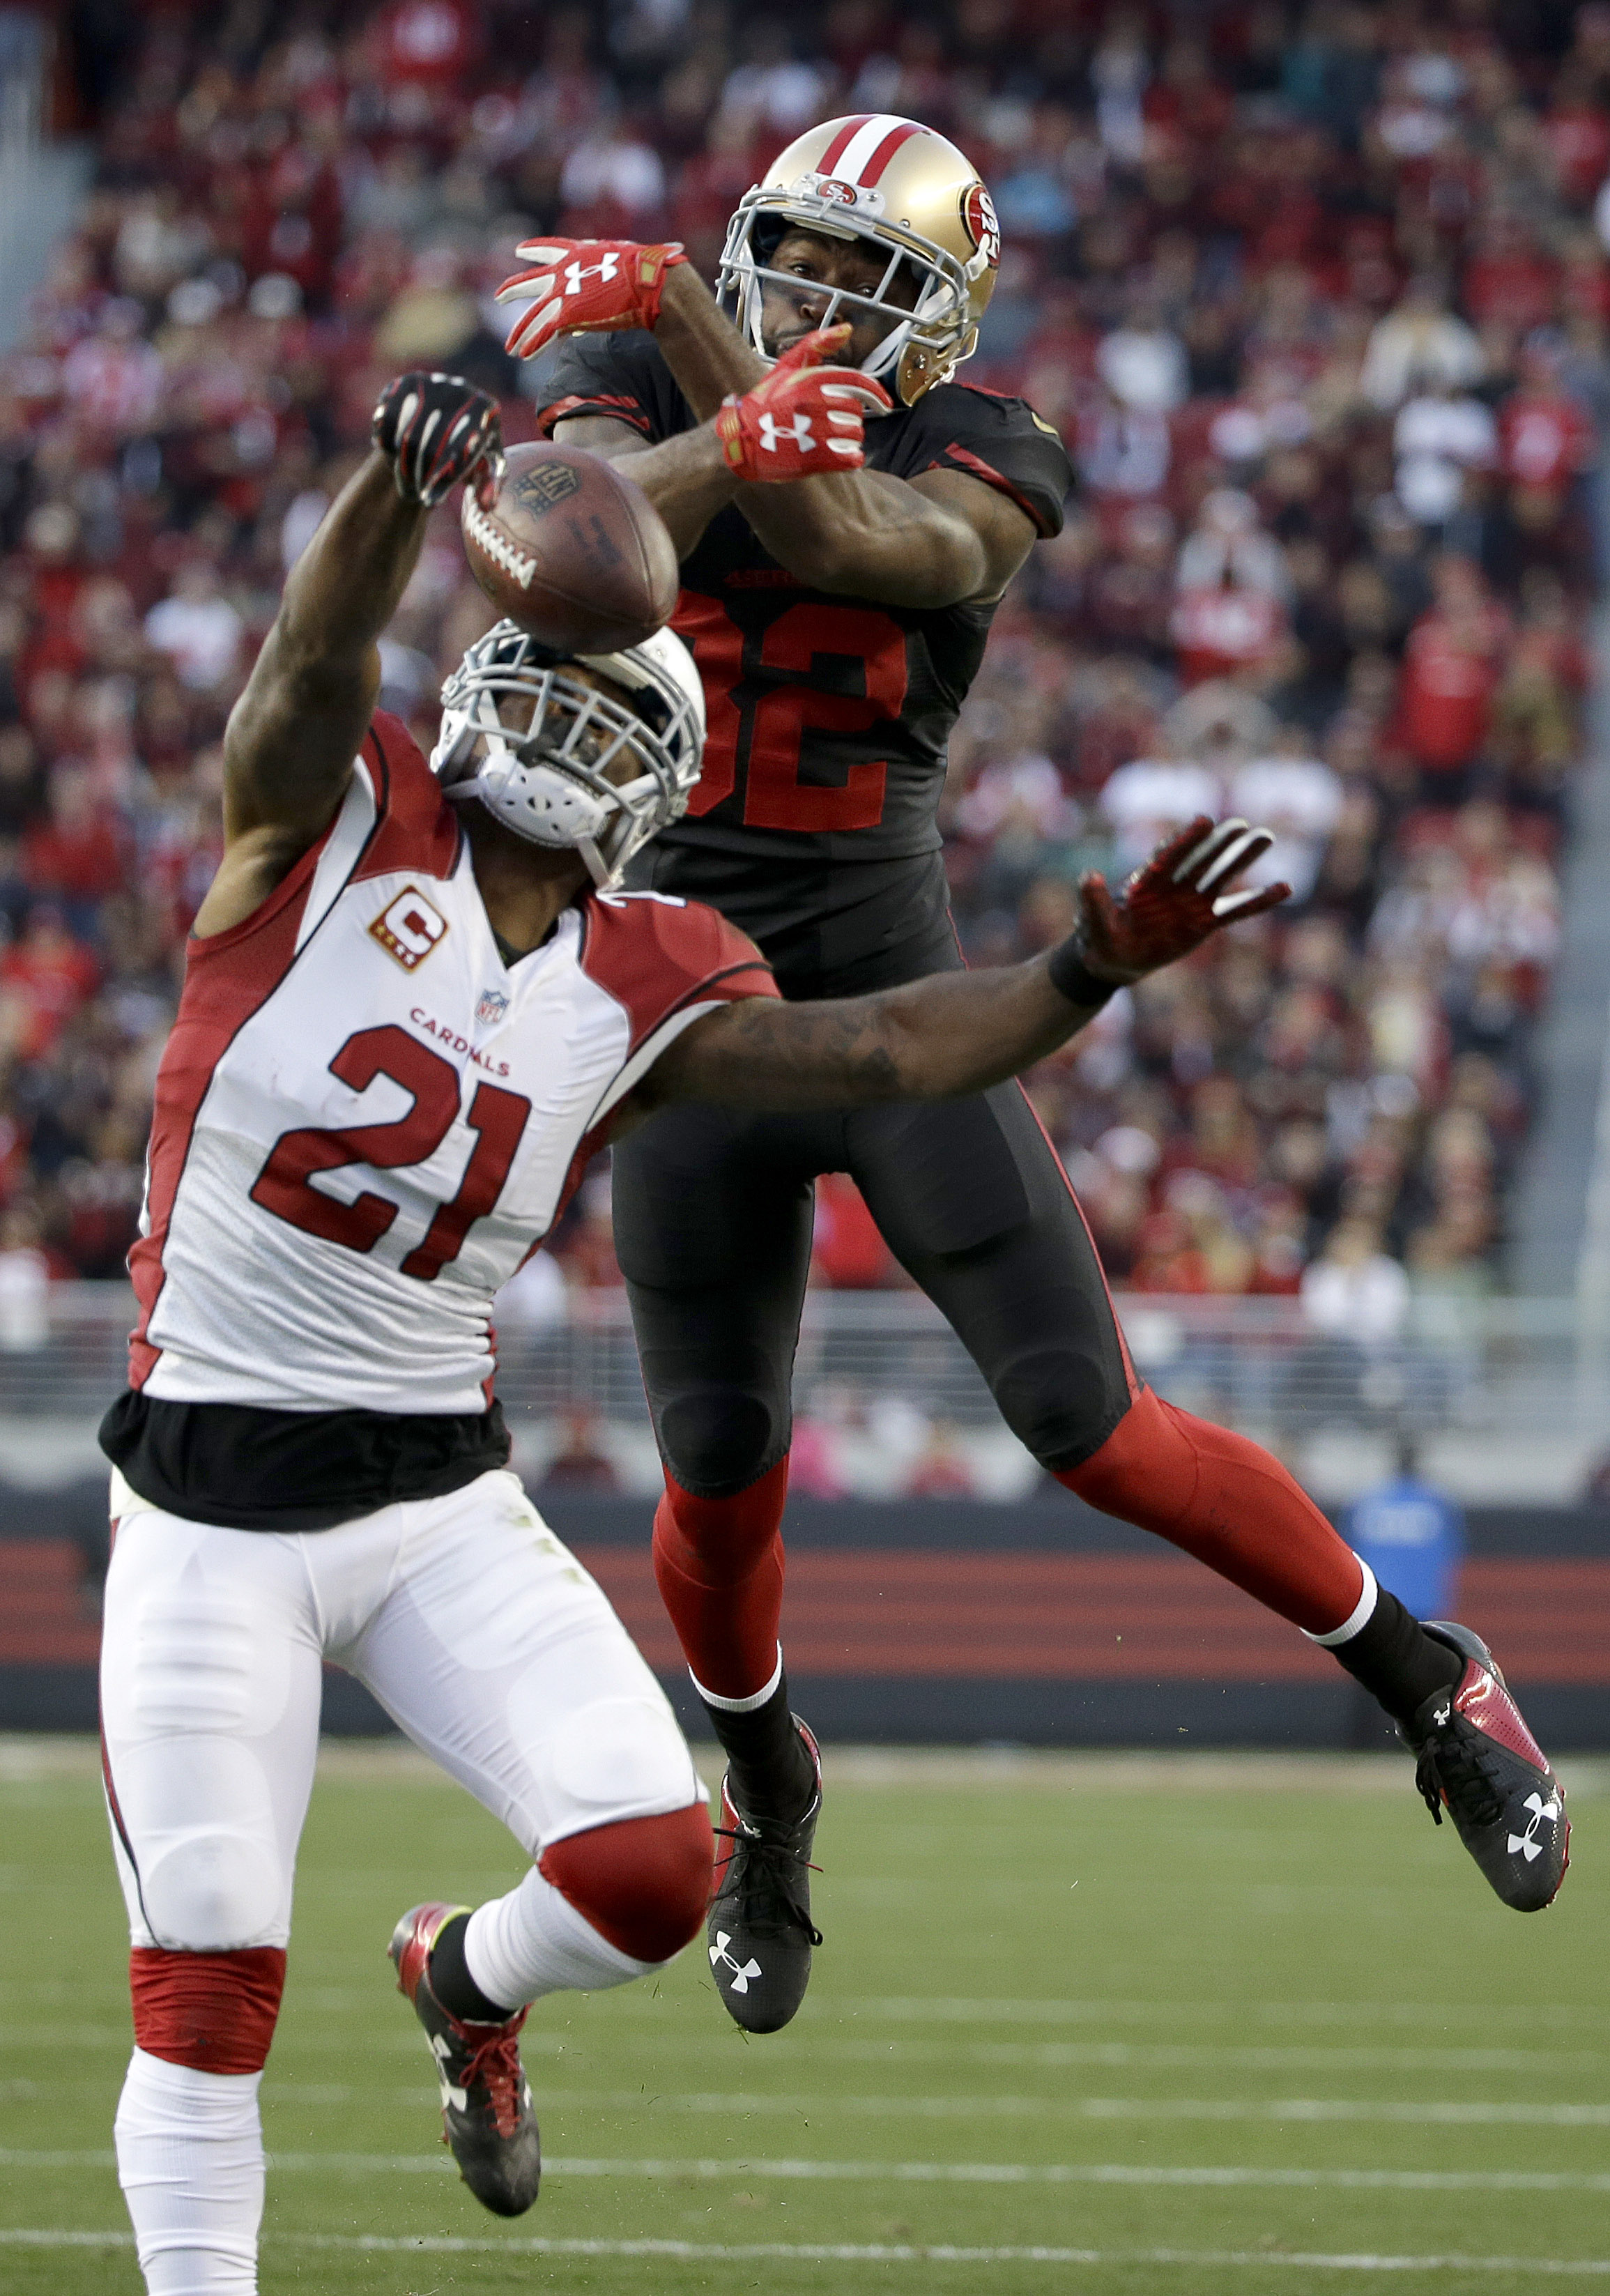 FILE - In this Nov. 29, 2015, file photo, Arizona Cardinals cornerback Patrick Peterson (21) breaks up a pass intended for San Francisco 49ers wide receiver Torrey Smith (82) during the second half of an NFL football game in Santa Clara, Calif. Tyrann Mat